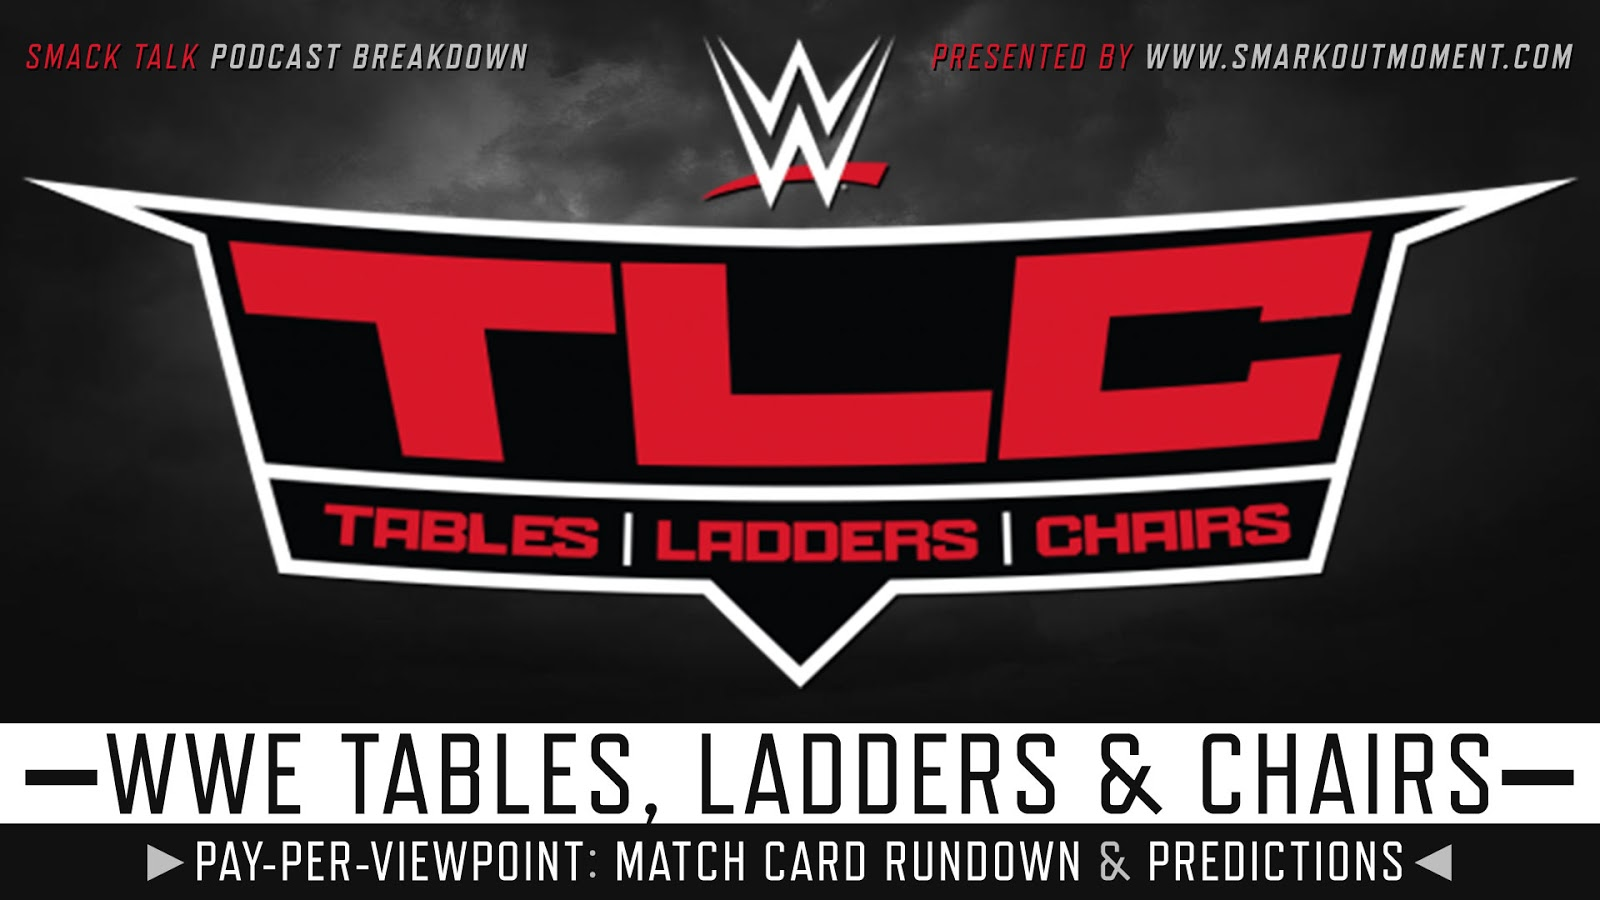 WWE TLC 2019 spoilers podcast